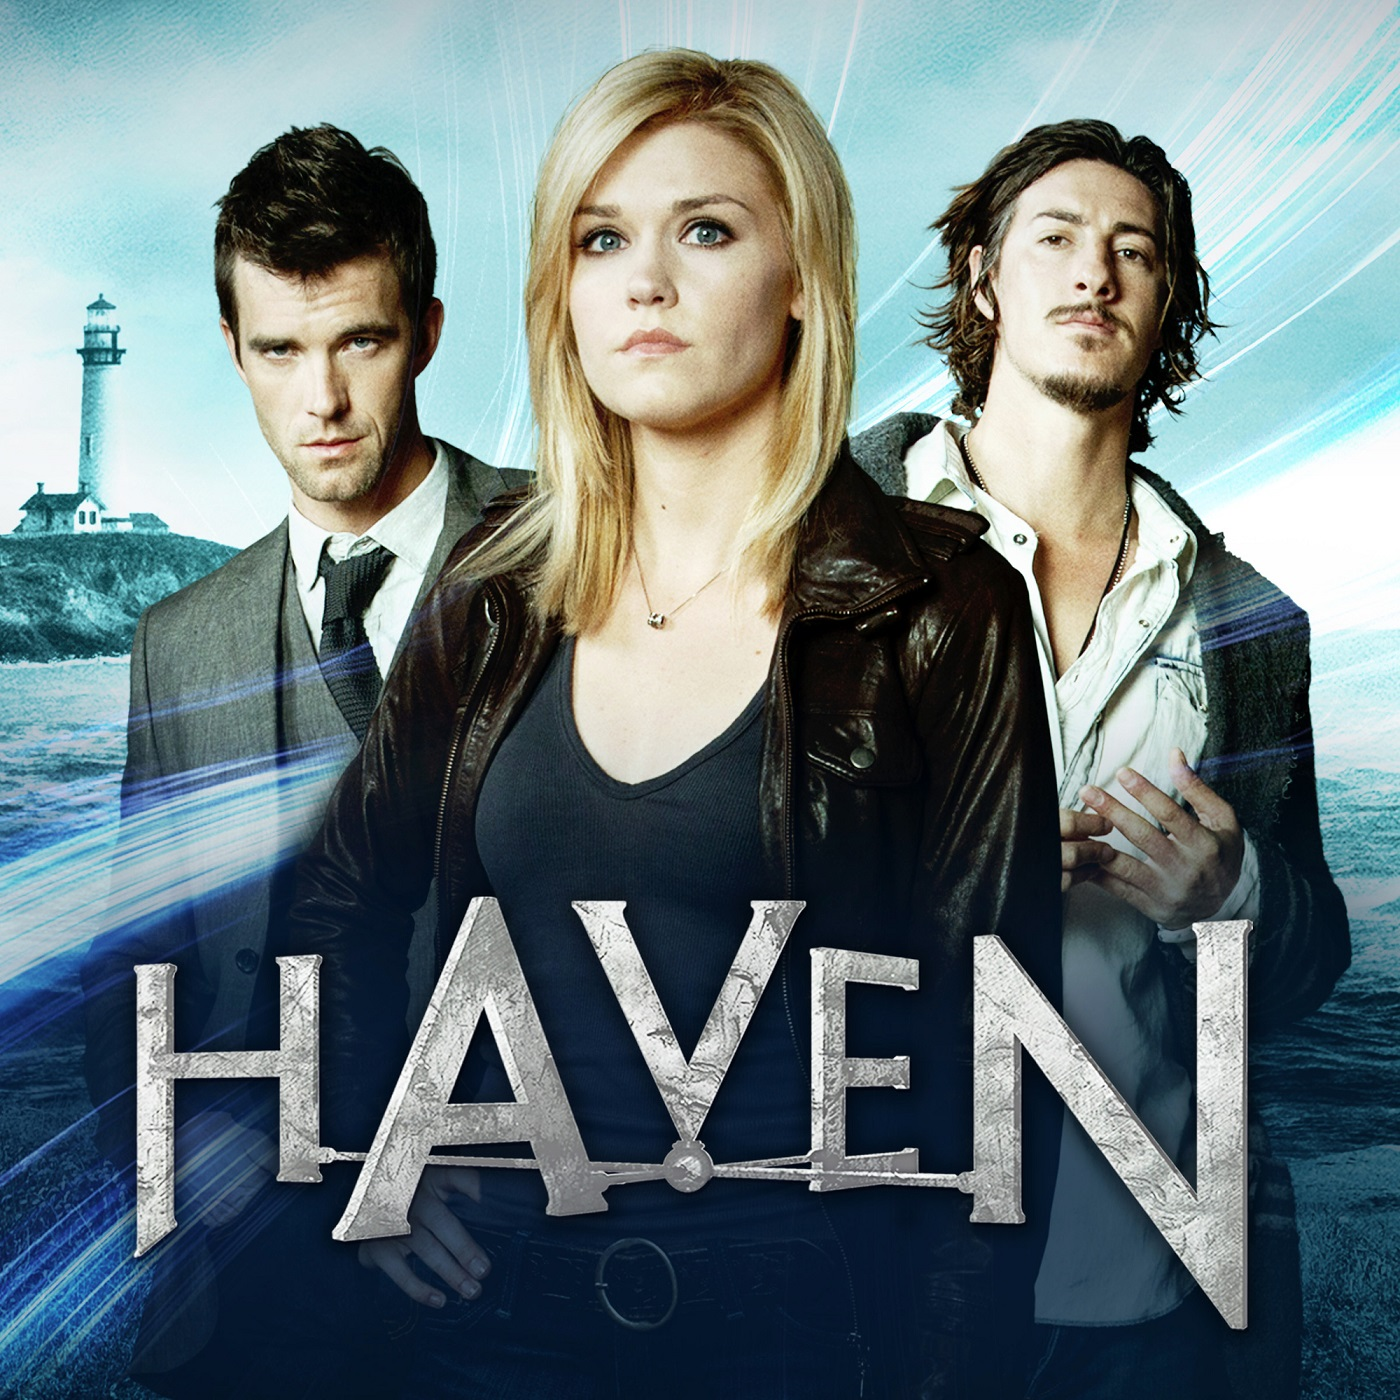 Haven S05 720p 1080p WEB DL | S05E17-E21 I6t2